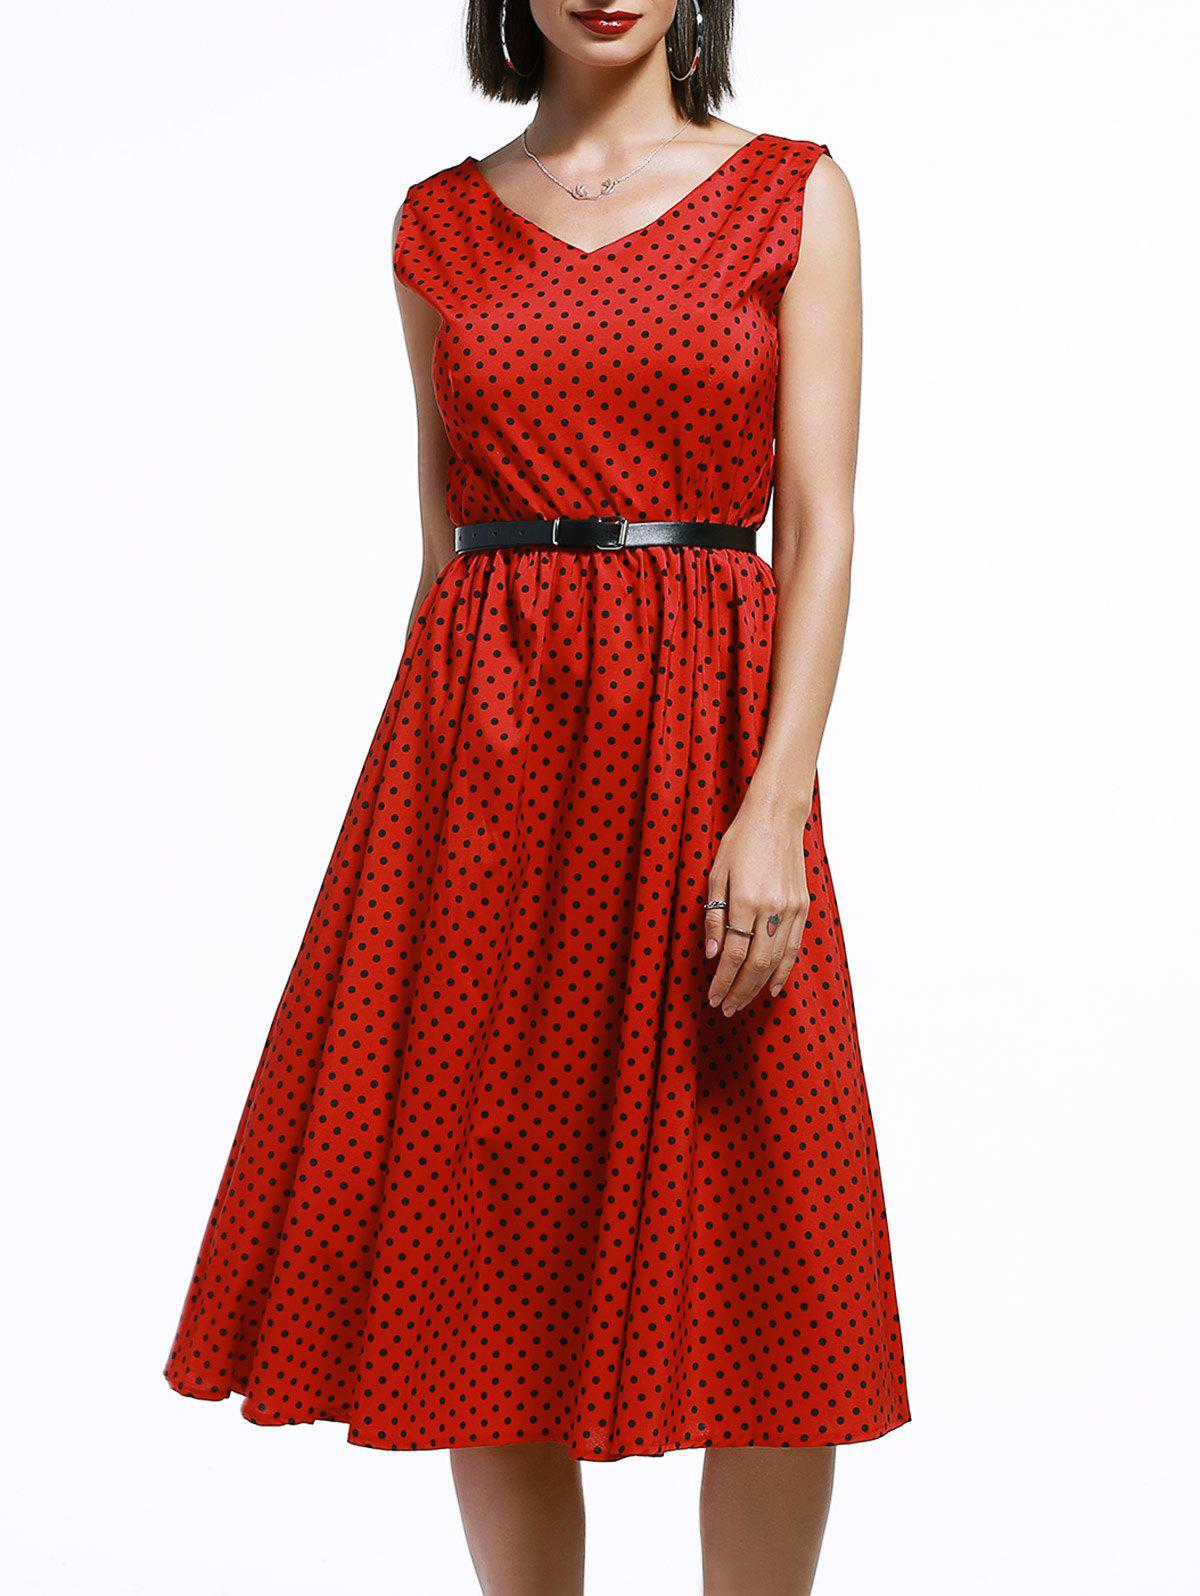 Vintage Women's V-Neck Sleeveless Polka Dot Dress